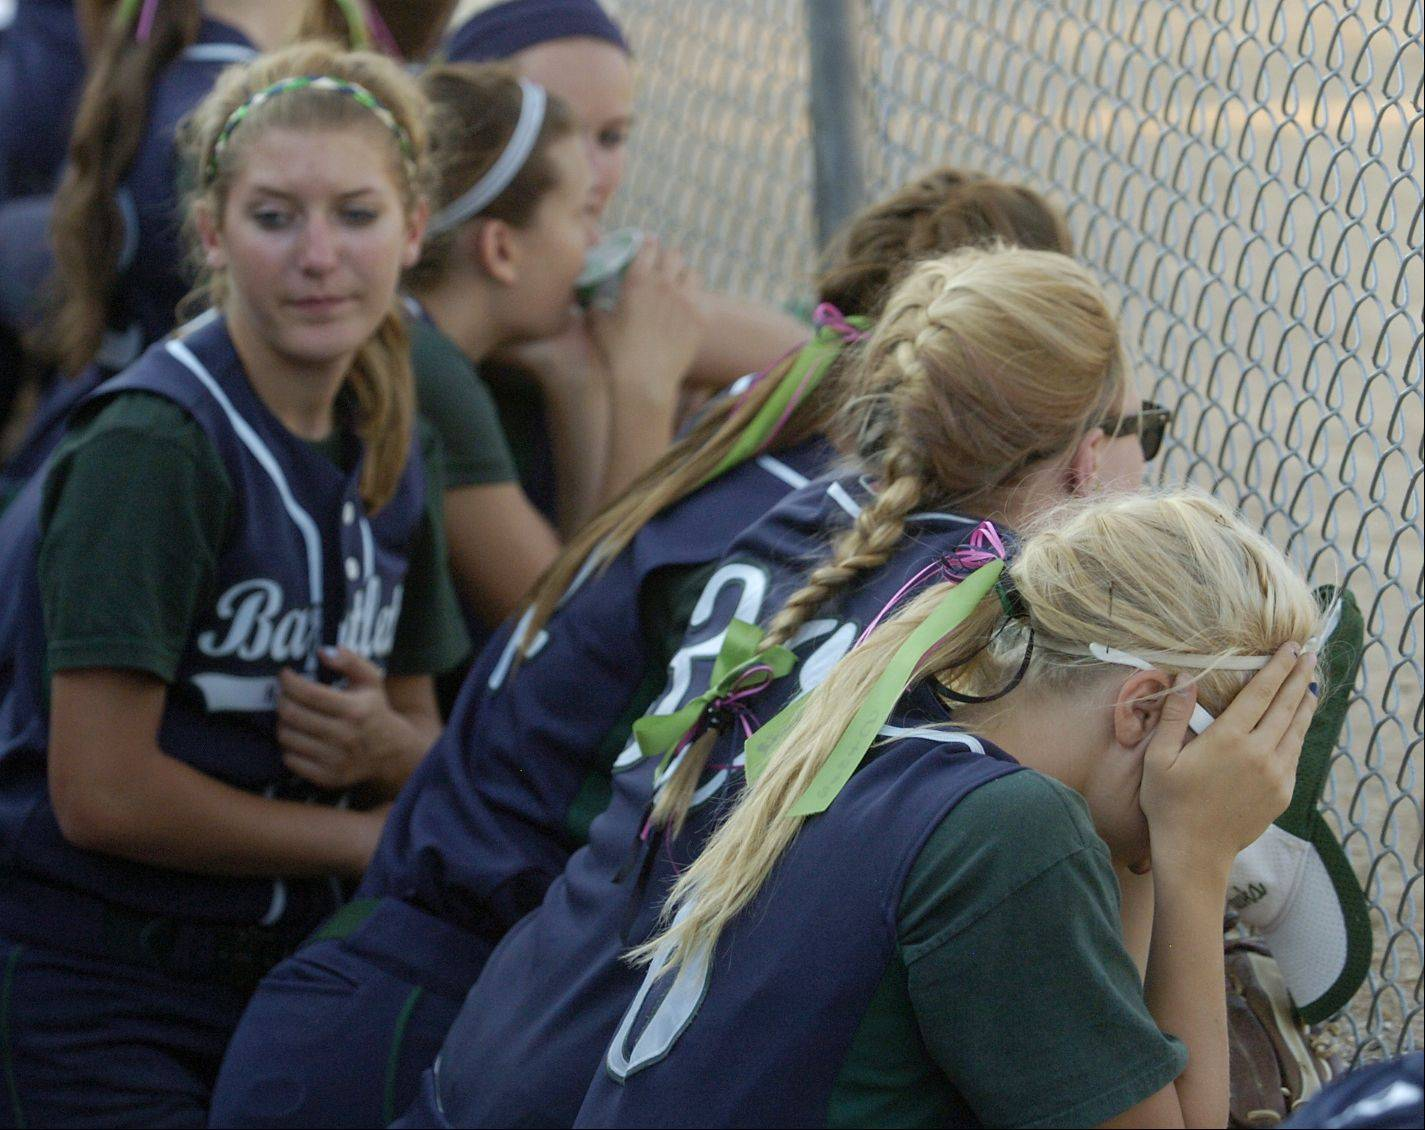 A dejected Bartlett bench reacts trailing by 5 runs late in the game against Marist in the Class 4A softball state championship game.